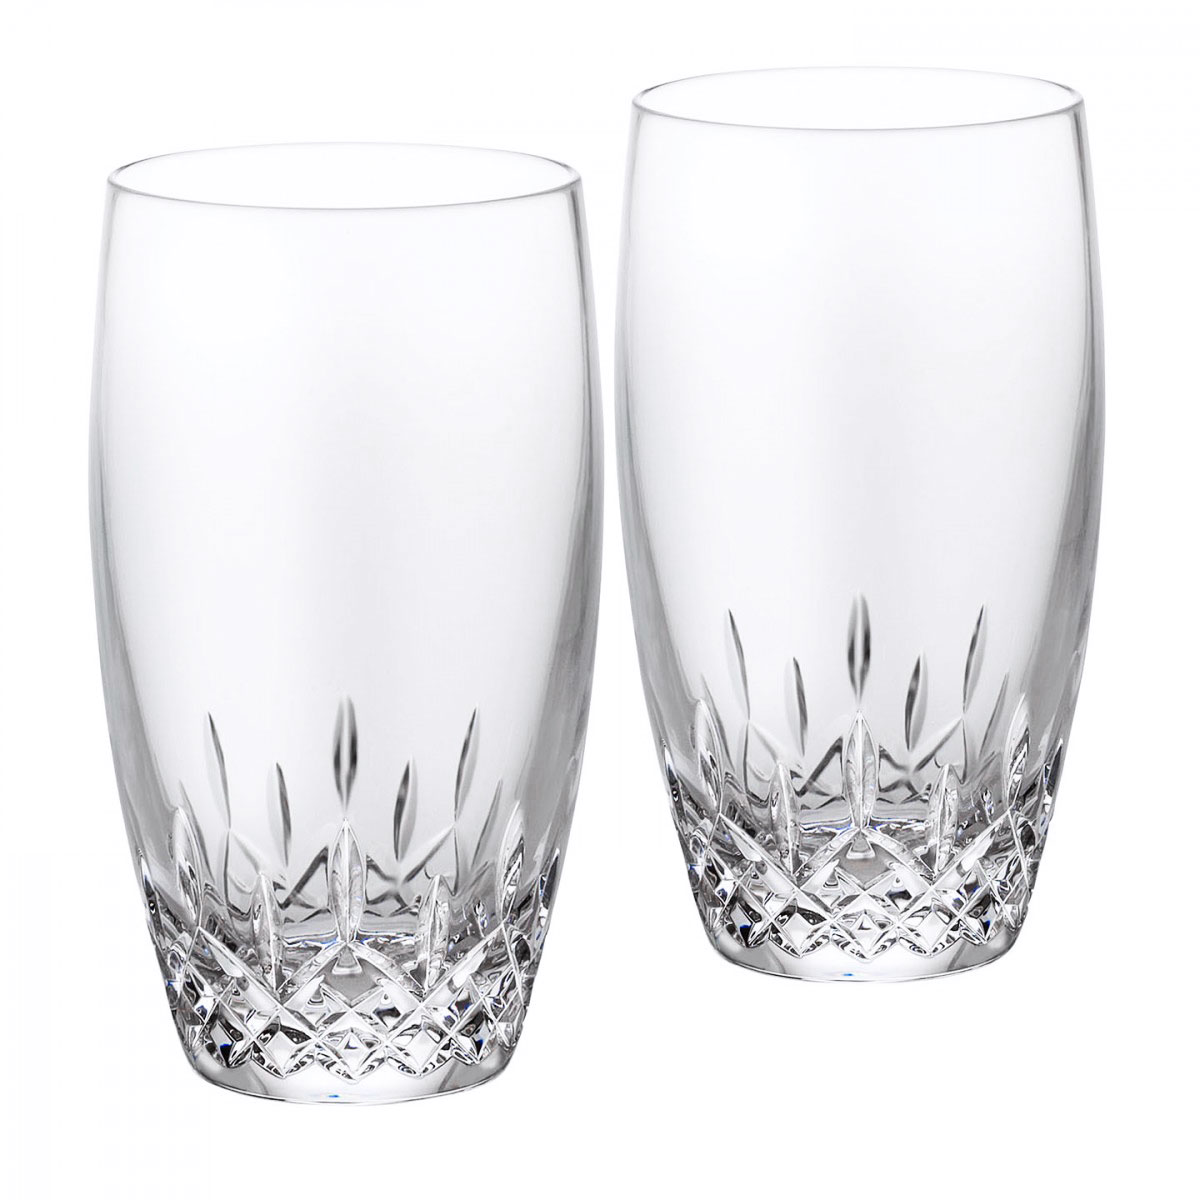 Waterford Crystal, Lismore Essence Crystal Hiball Tumbler, Pair